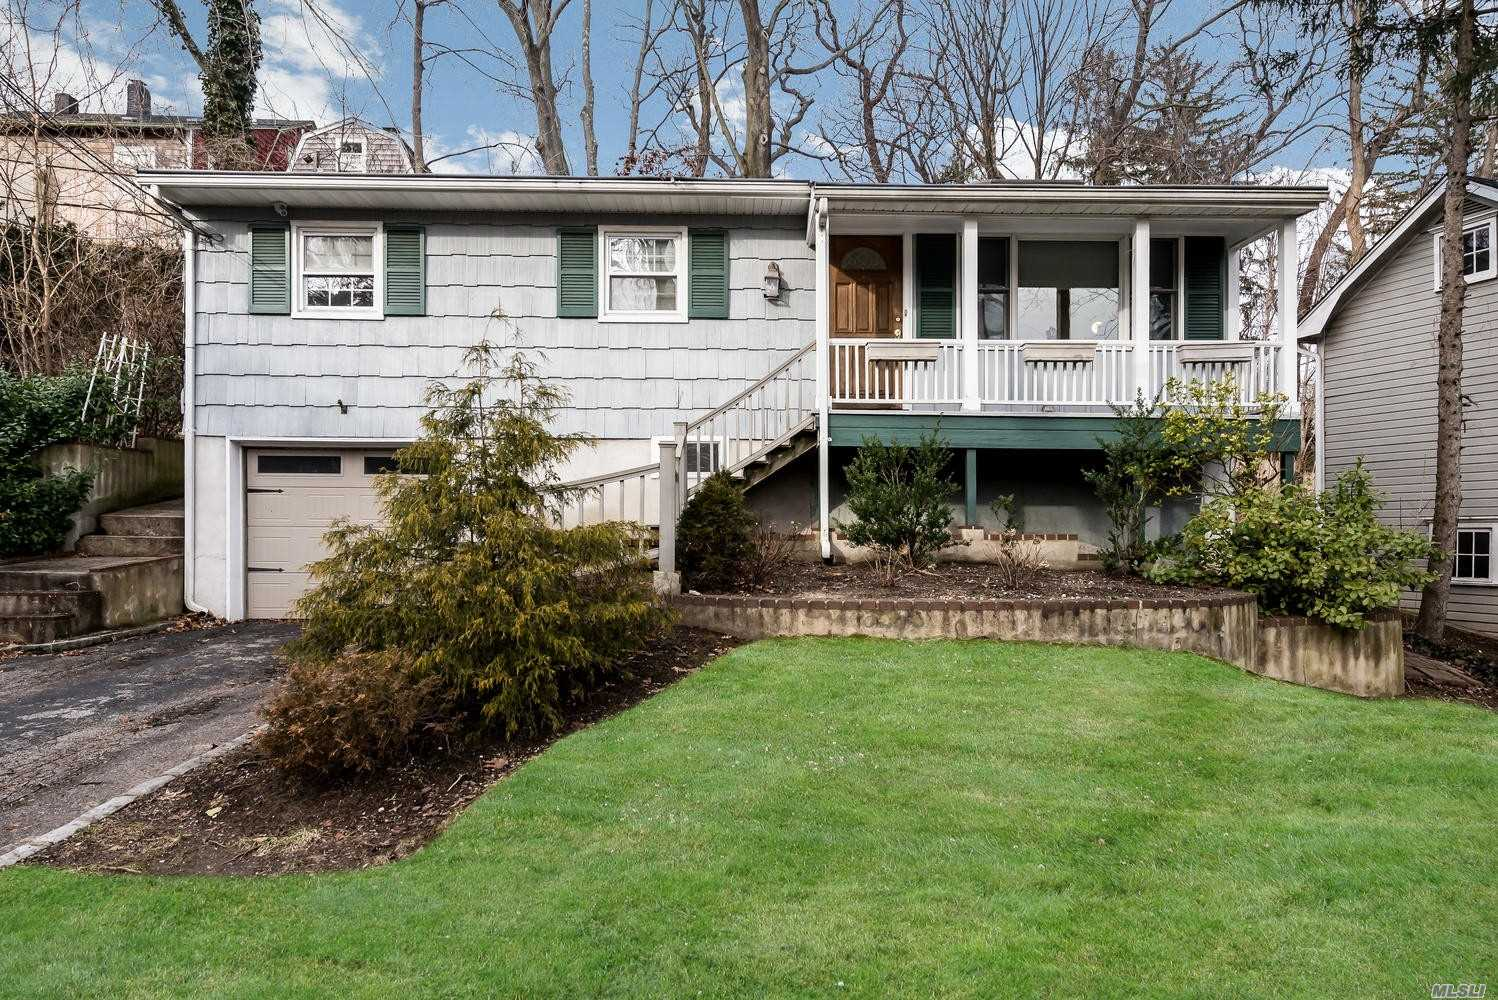 Charming Hillside Ranch, 4 Bedroom 2.5 Bath With A Fully Finished Lower Level At Street Level. Hard Wood Floors Throughout Bedrooms And Living Space. Central To Village, Library, Shopping And Lirr. Town Beaches, Boating, And Parks Nearby. Award Winning Locust Valley Schools.